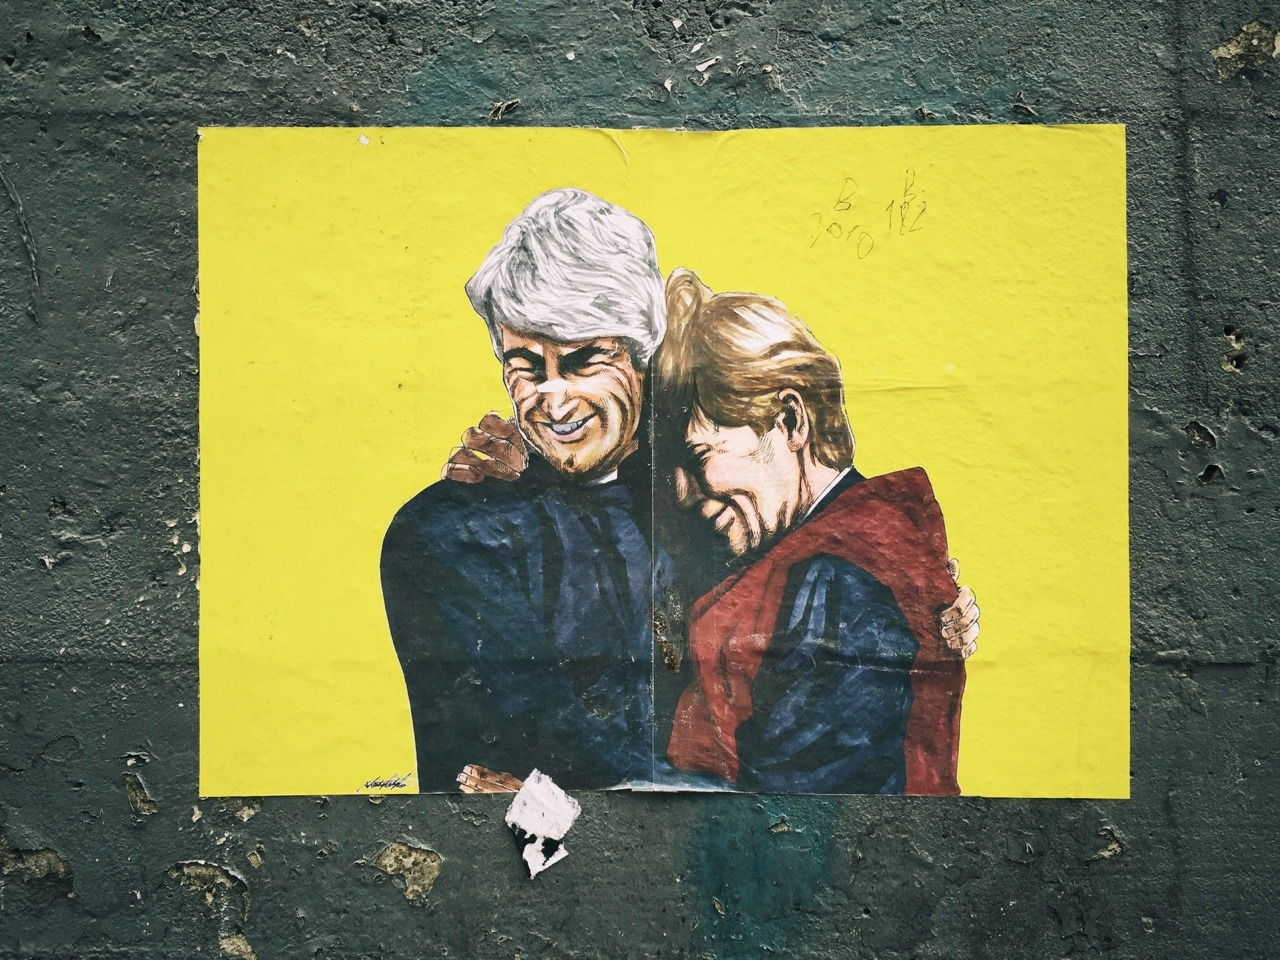 Gorgeous street art of Ted and Dougal as seen on the side of a wall on George's Street